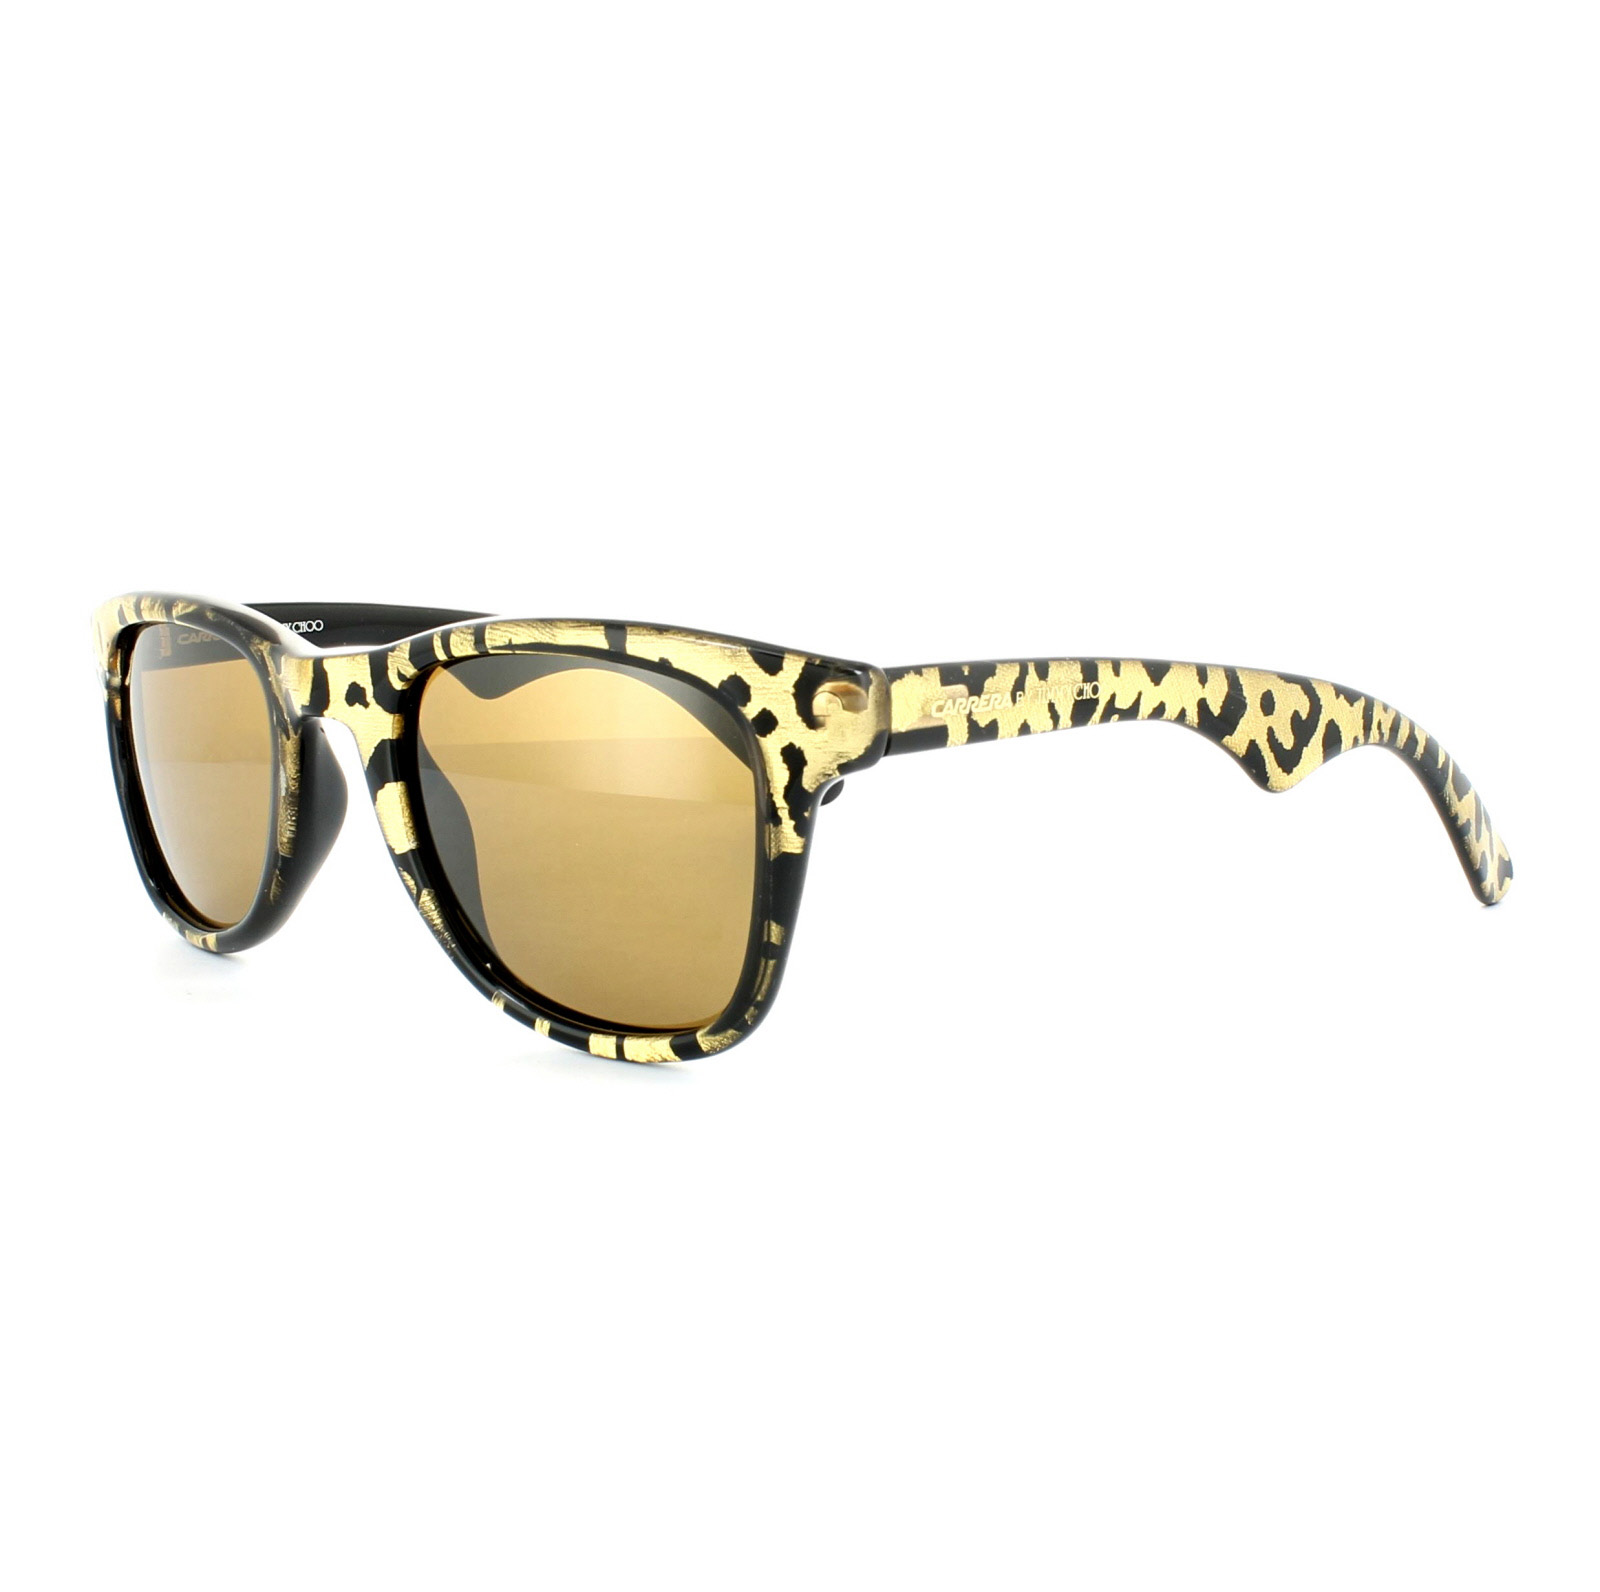 ff9eba4eed1 Cheap Carrera by Jimmy Choo Carrera 6000 JC Sunglasses - Discounted ...